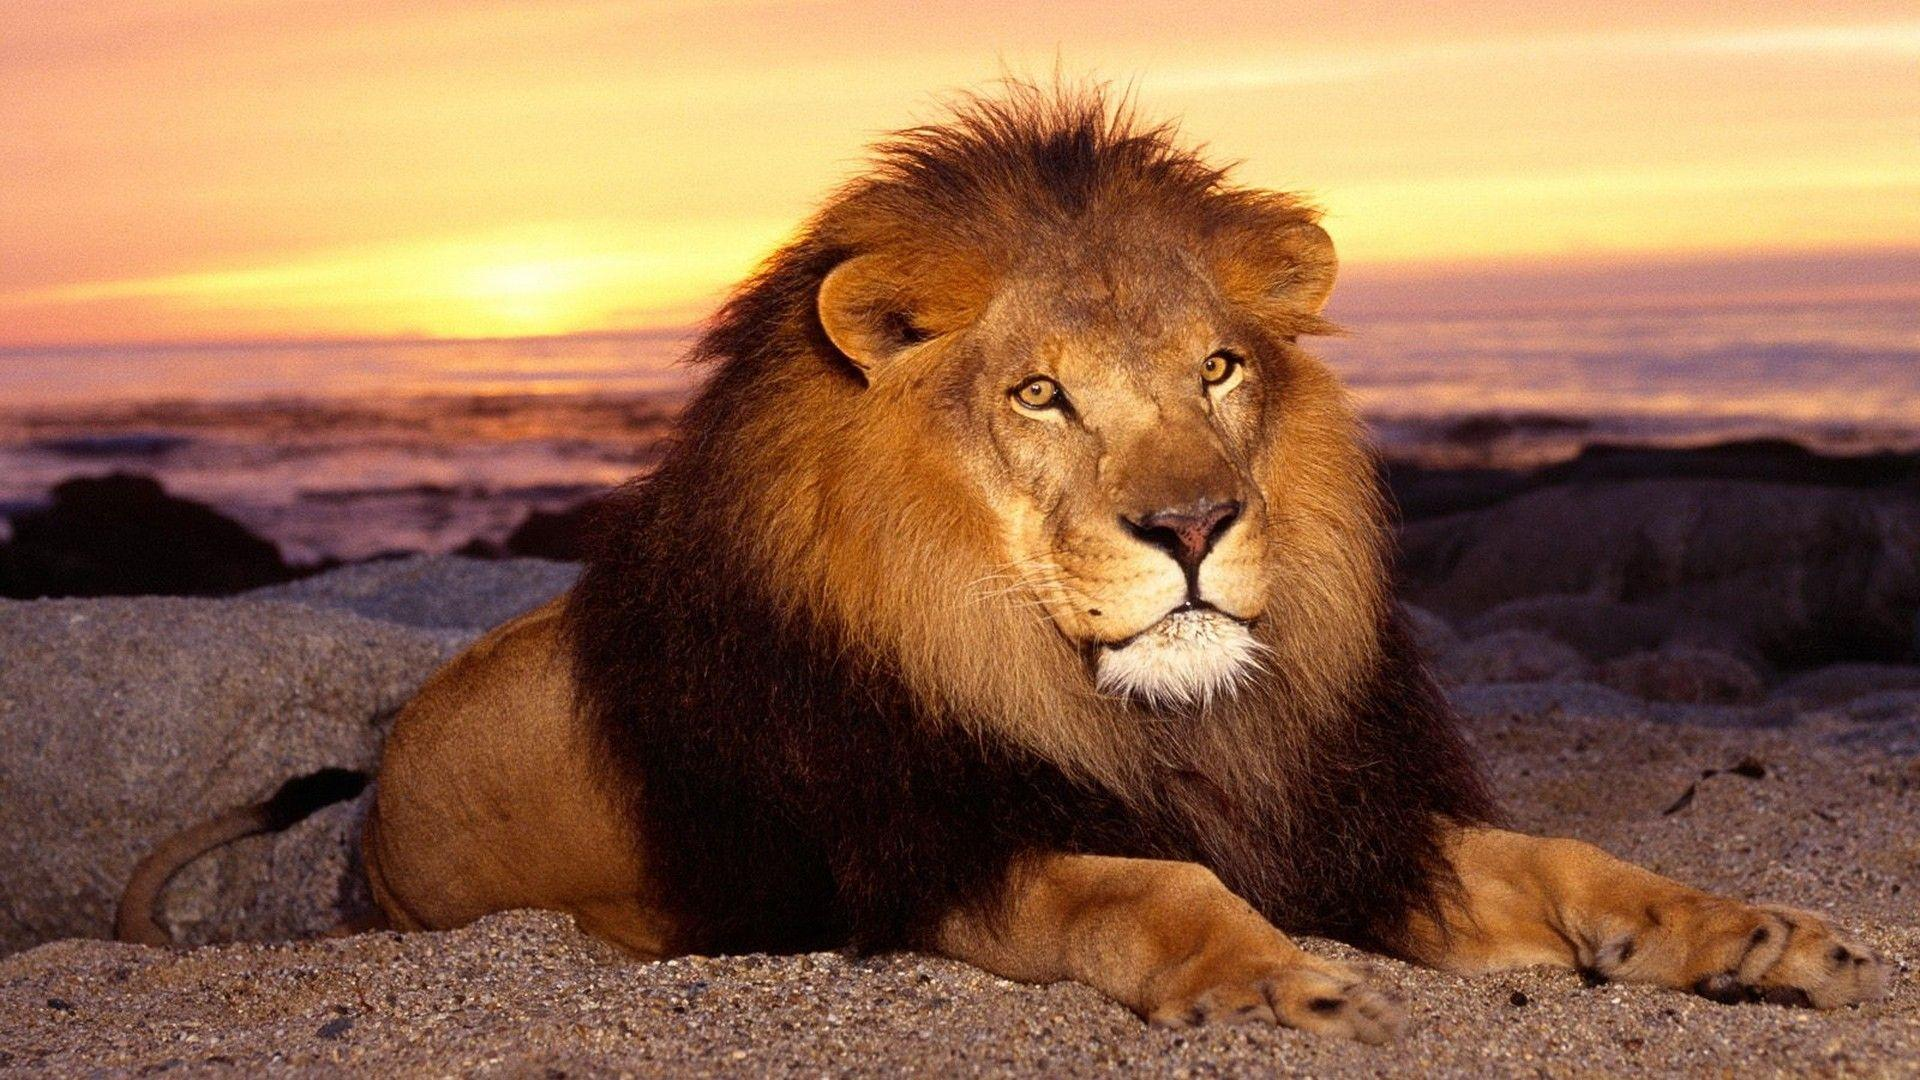 Hd Lion Wallpapers 1080p Wallpaper Cave